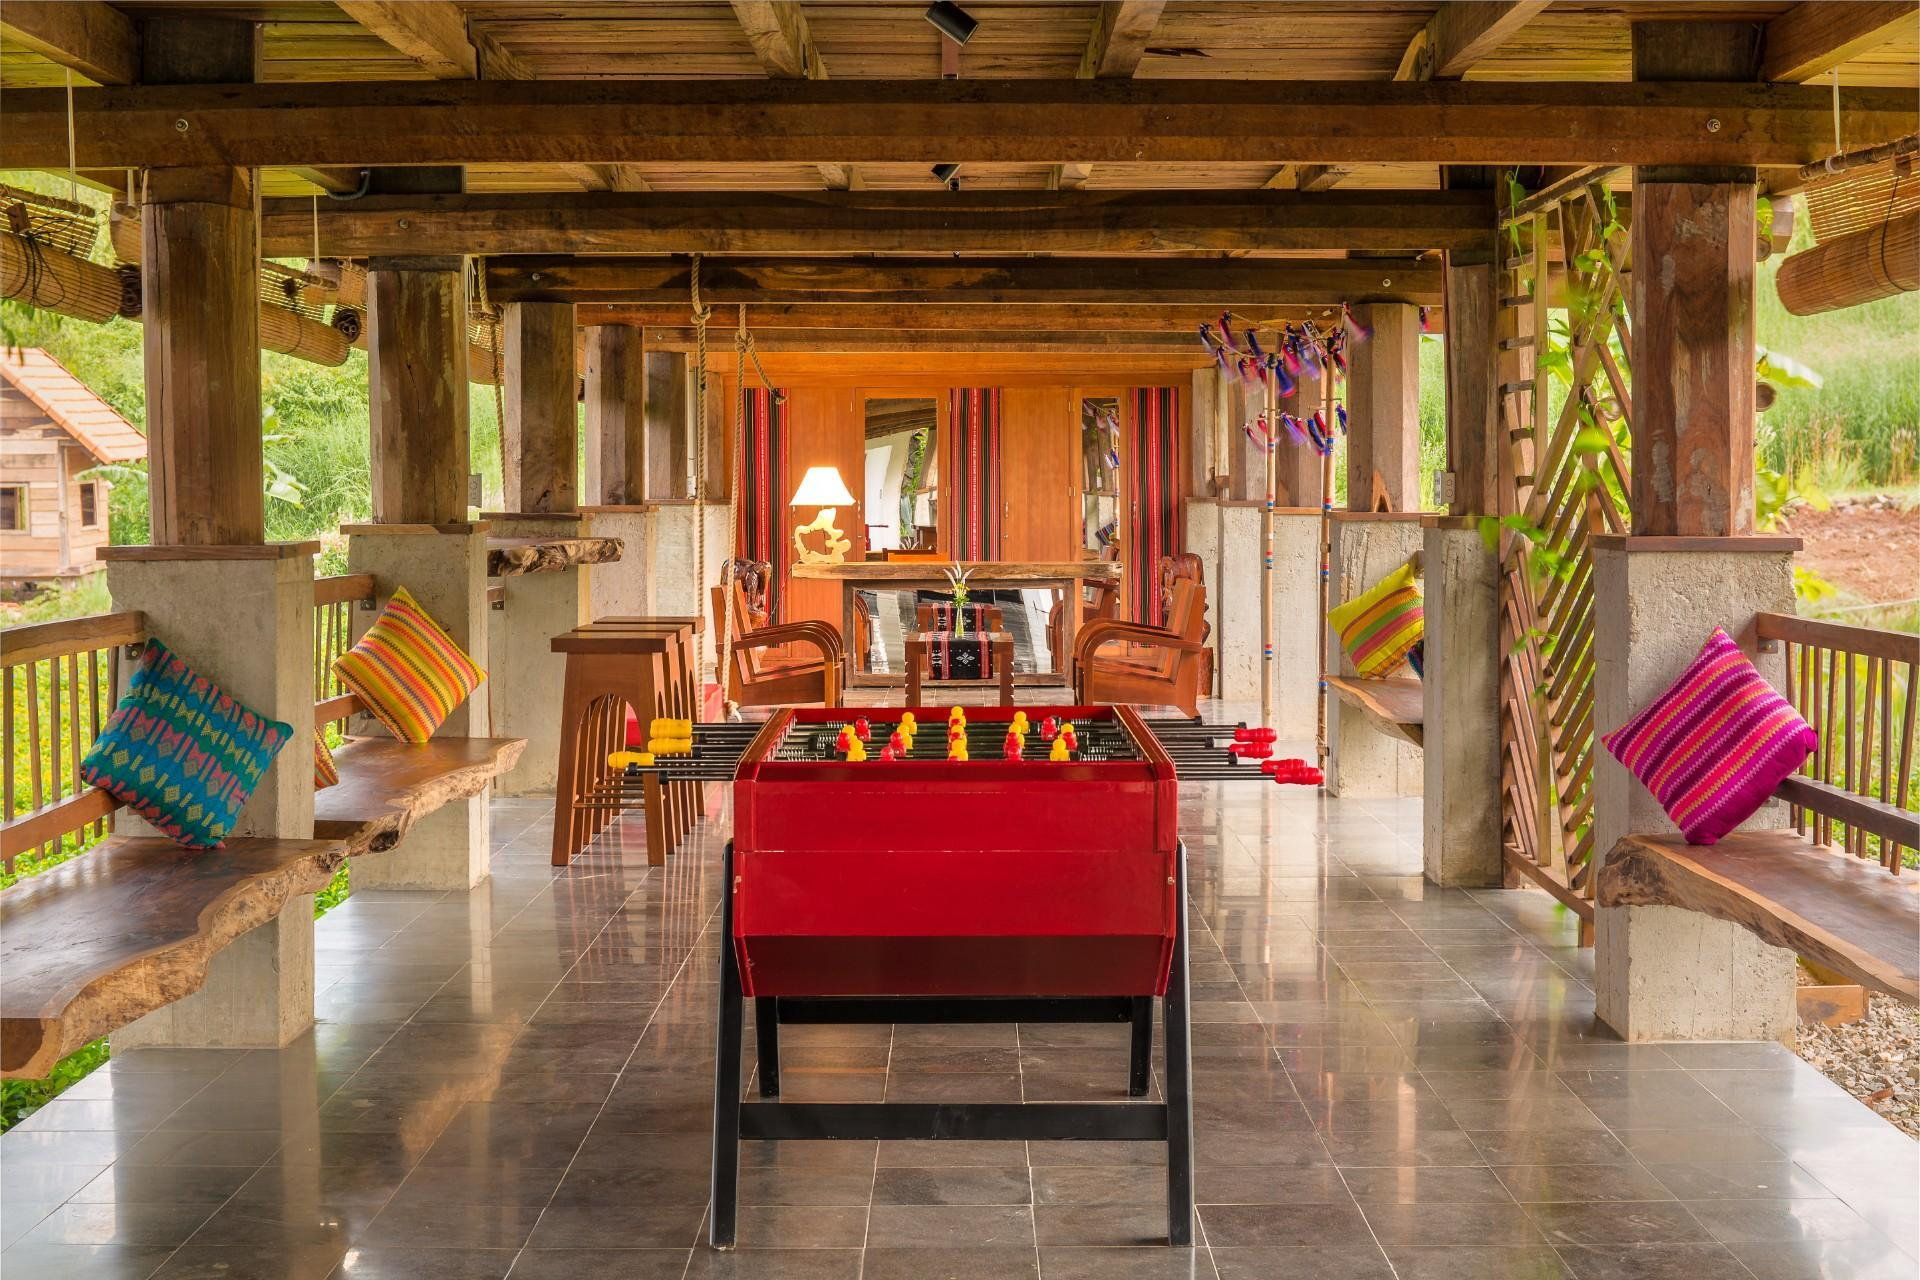 Best Price on Lak Tented Camp in Buon Ma Thuot + Reviews!